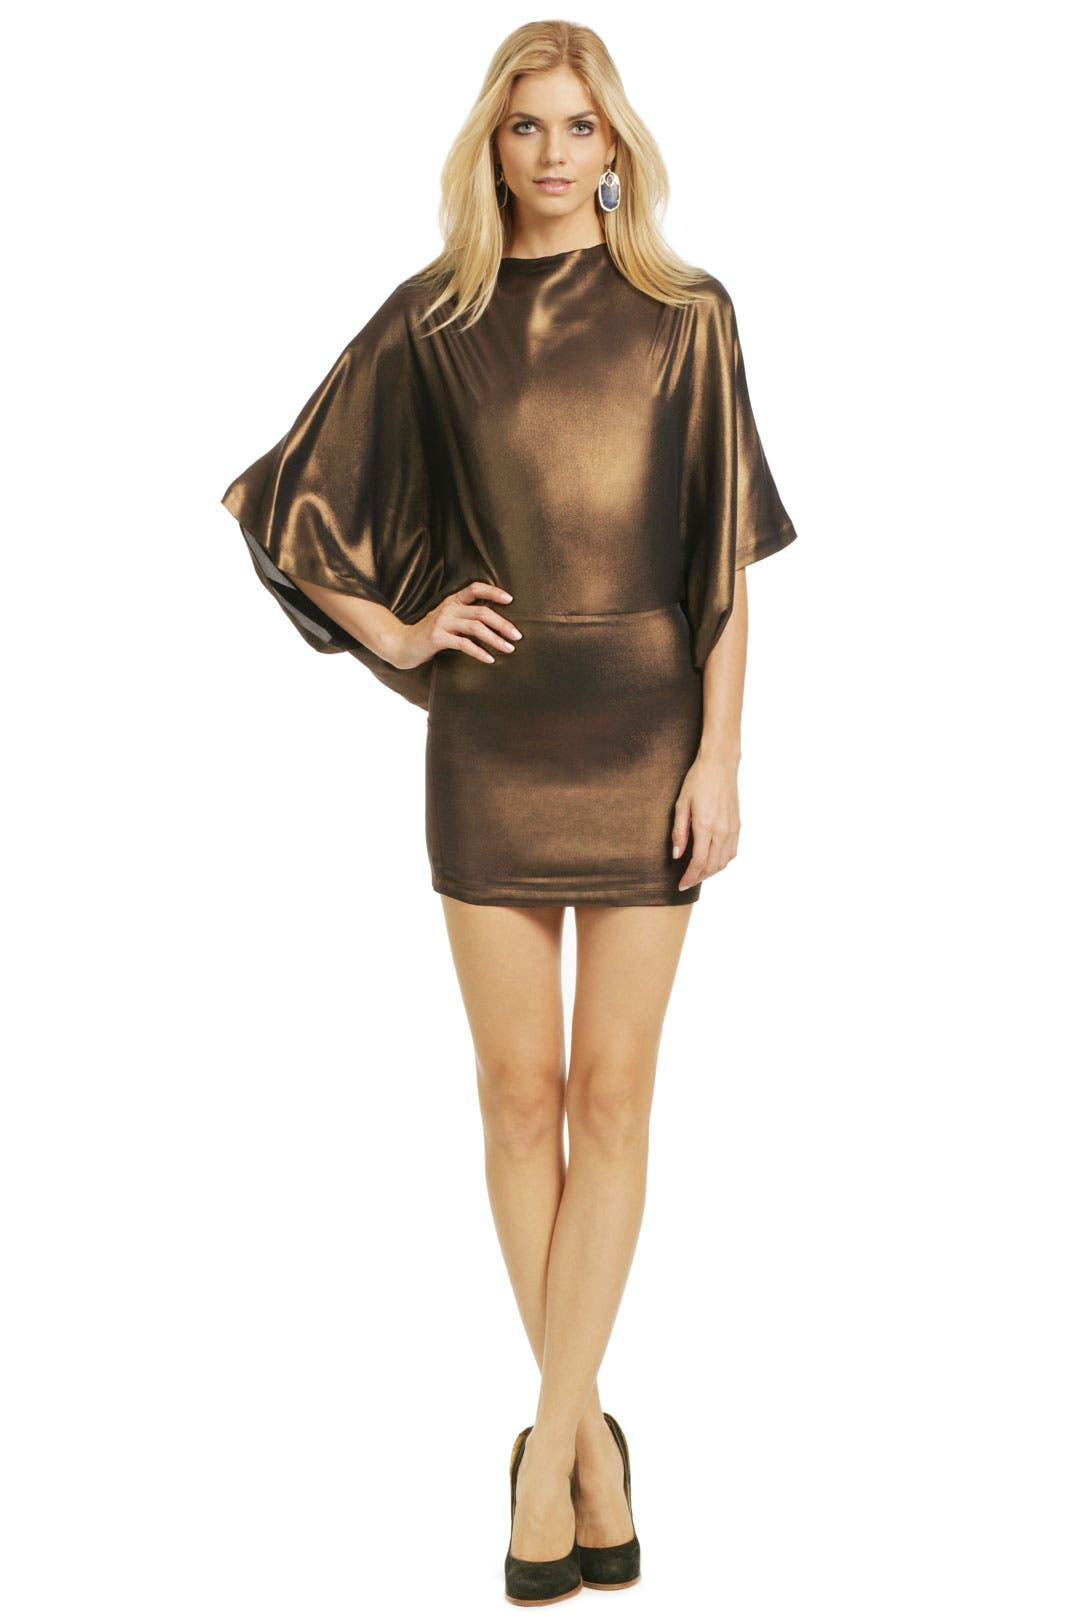 Go For the Bronze Dress by Plein Sud